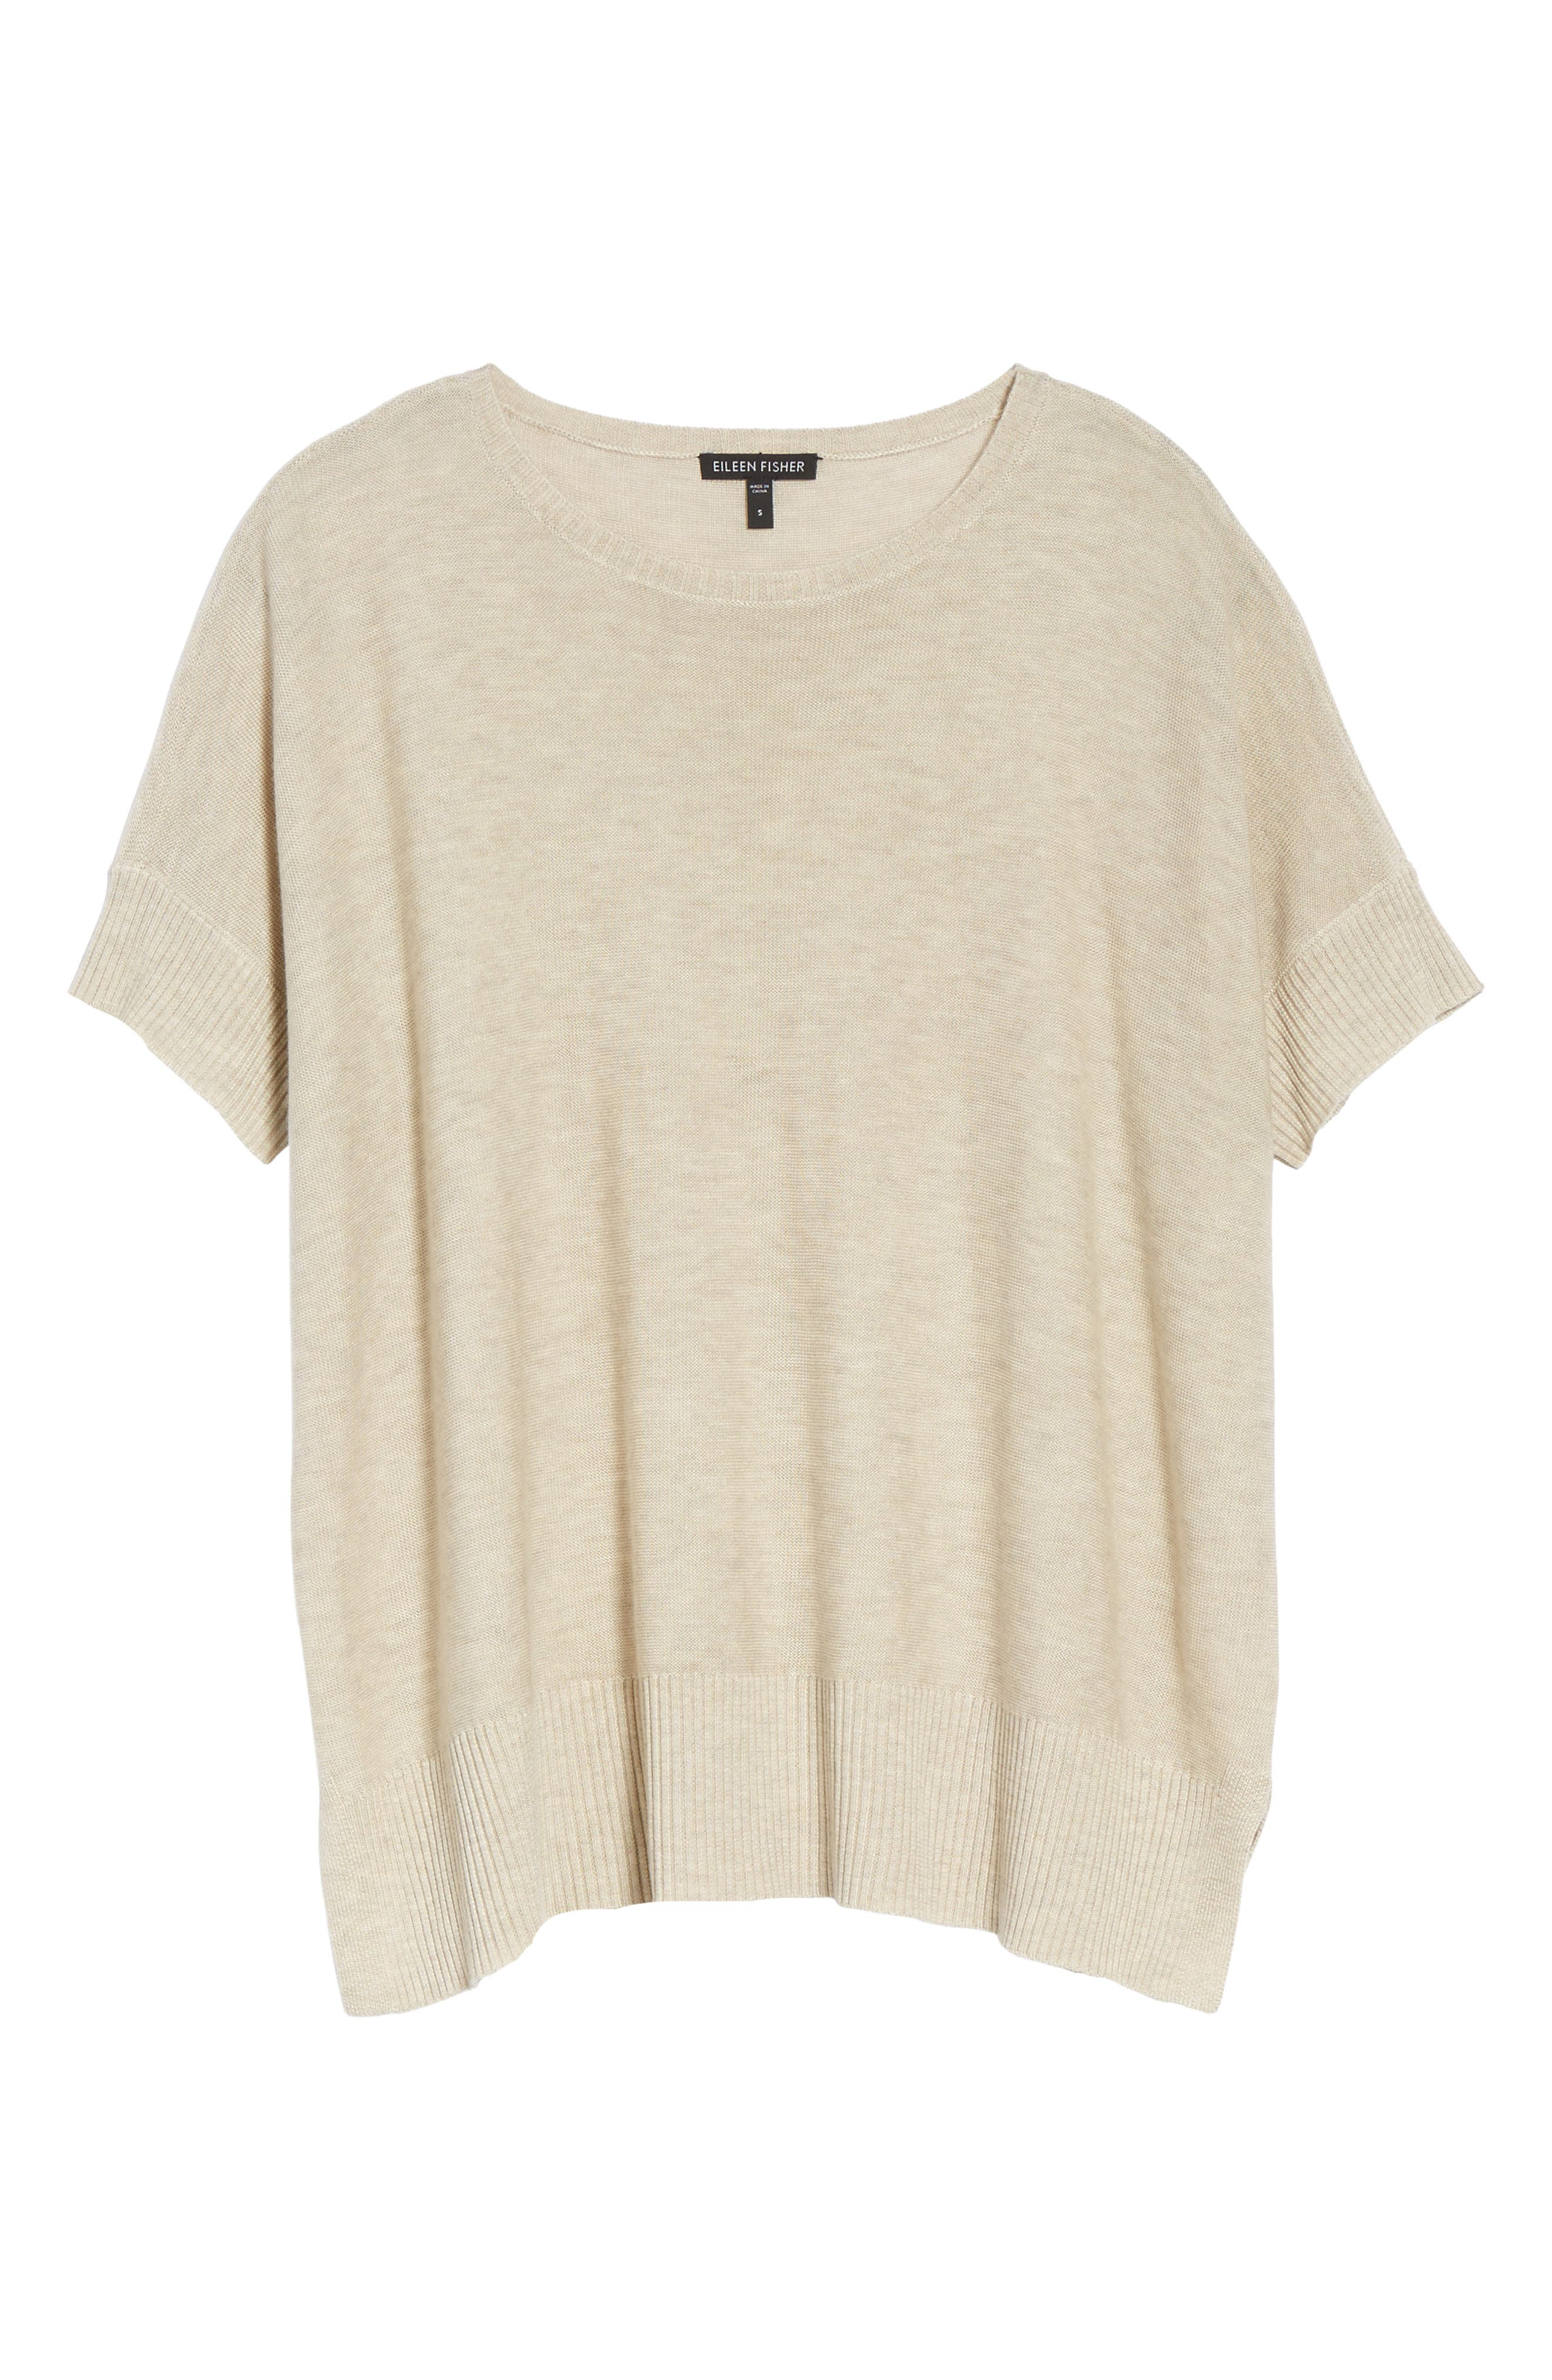 Tencel<sup>®</sup> & Merino Wool Top,                             Alternate thumbnail 6, color,                             Maple Oat